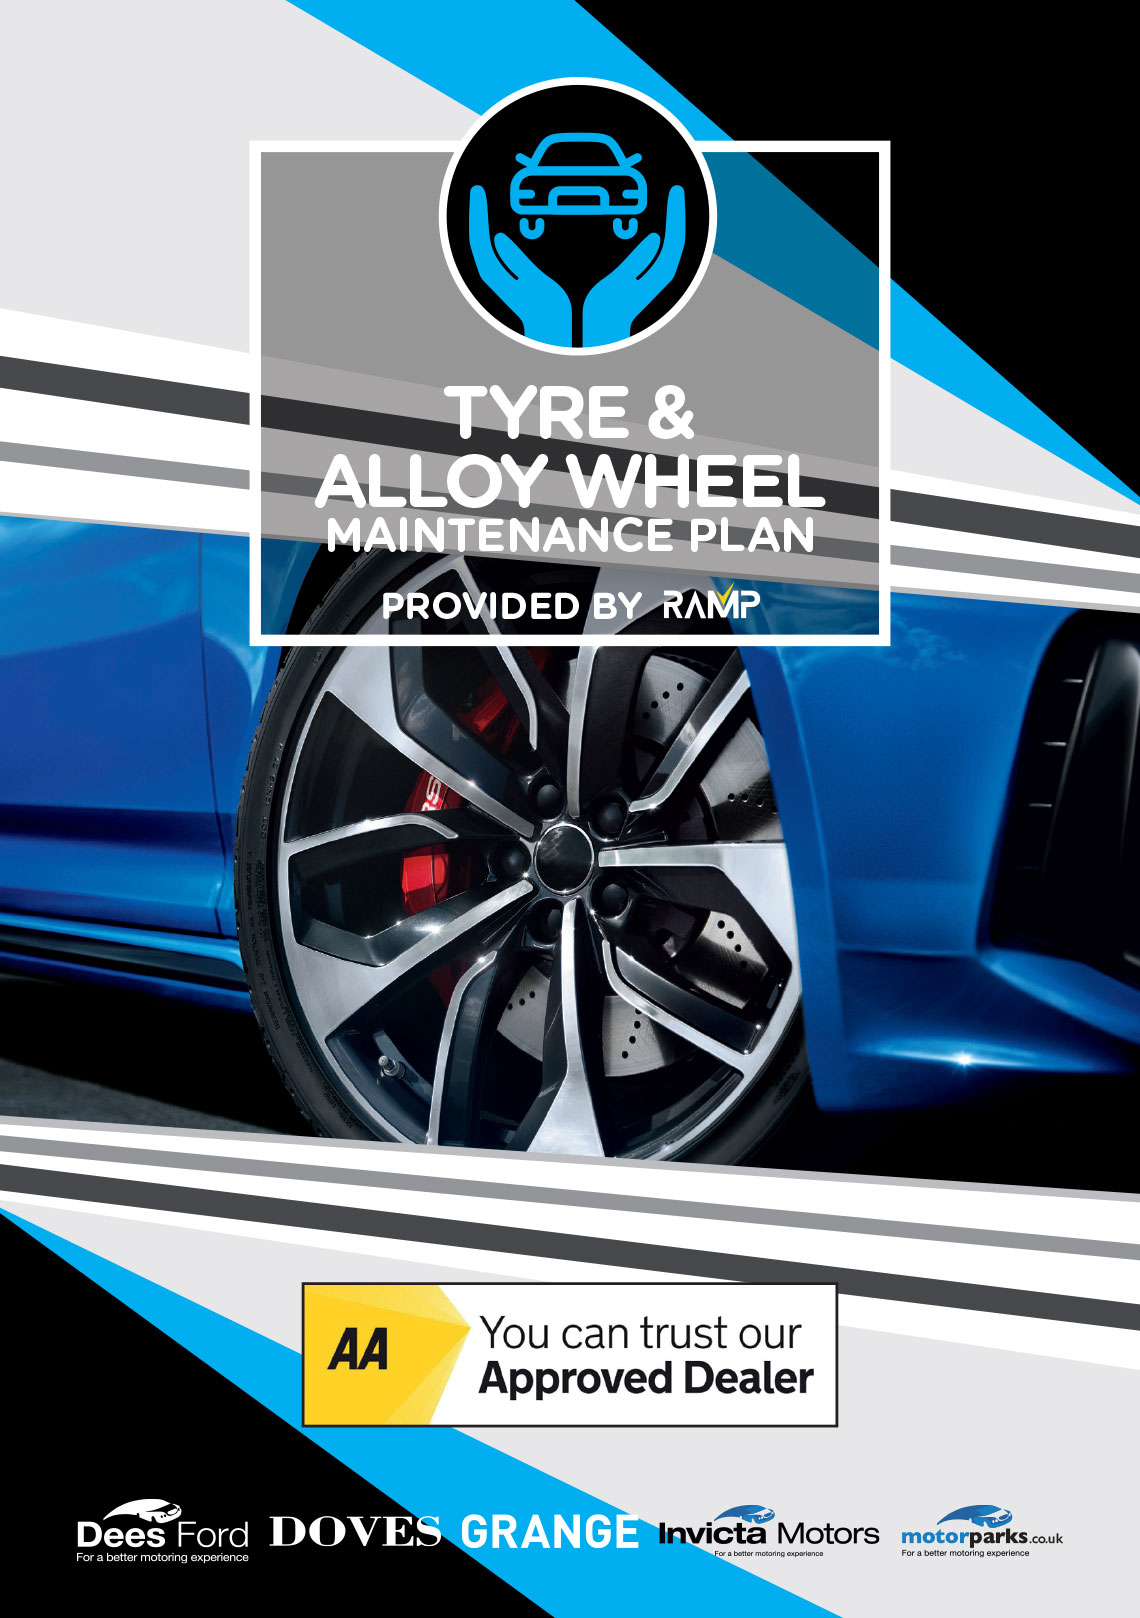 Tyre & Alloy Wheel Maintenance Plan - Provided by RAMP